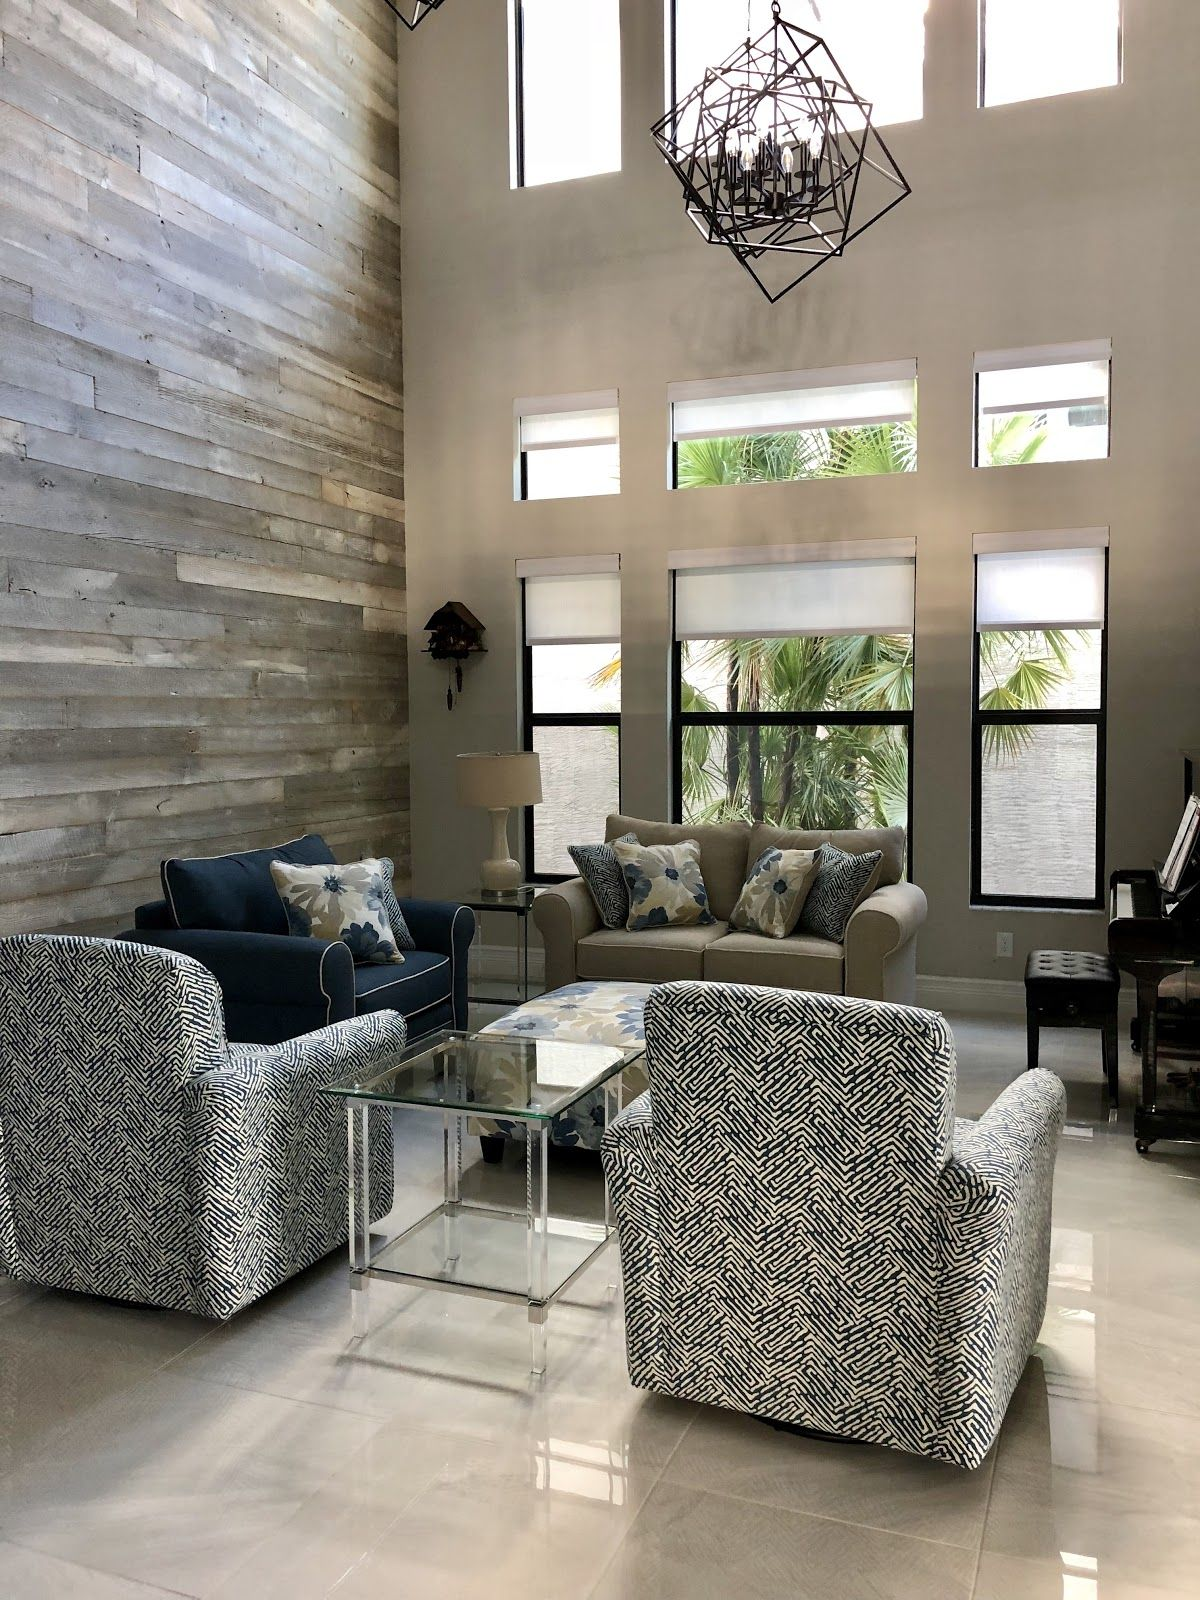 Add Texture To A Soft Room With A Reclaimed Wood Accent Wall For An Earthy Swoon Worthy Effect Wood Panel Walls Reclaimed Wood Wall Reclaimed Wood Wall Panels